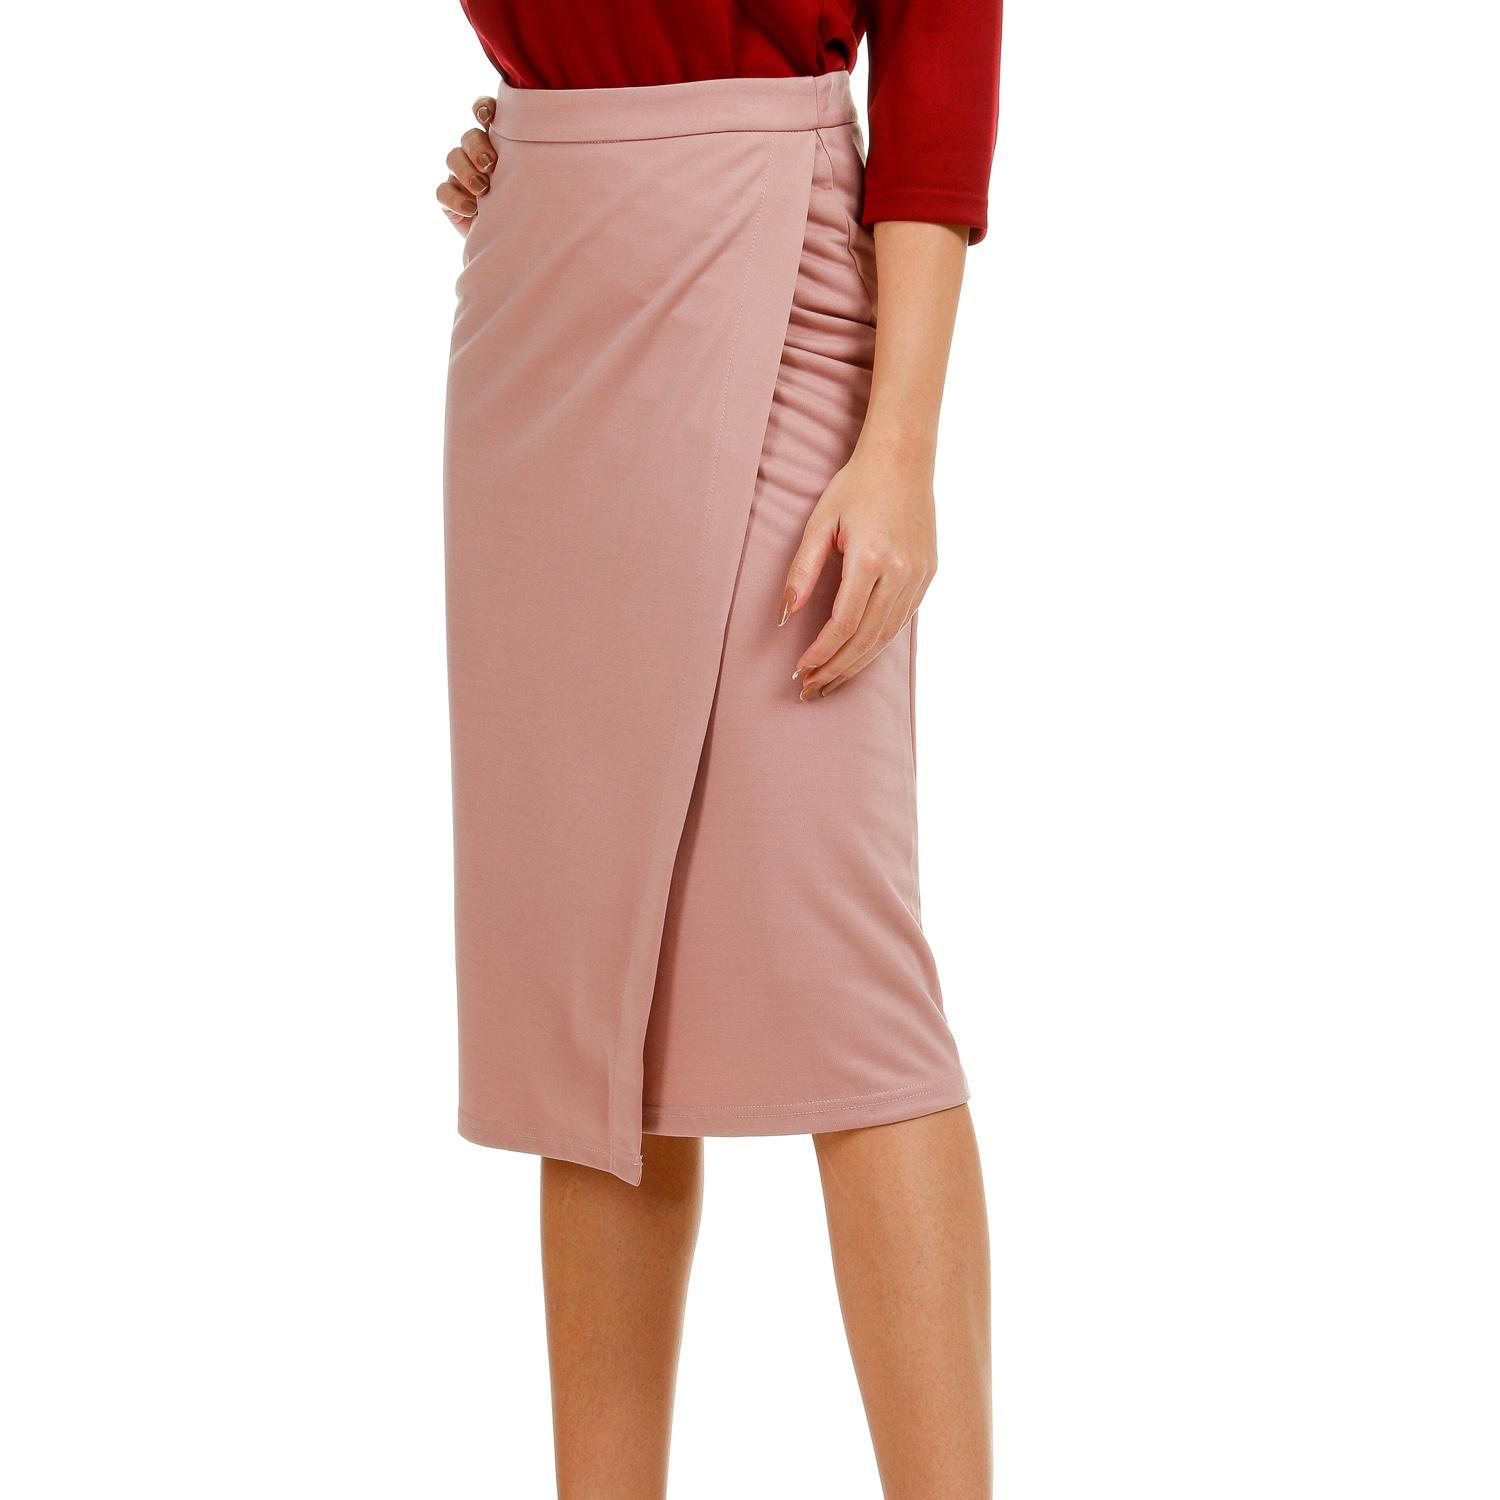 2cafb9eb21 Skirts for Women for sale - Womens Skirts online brands